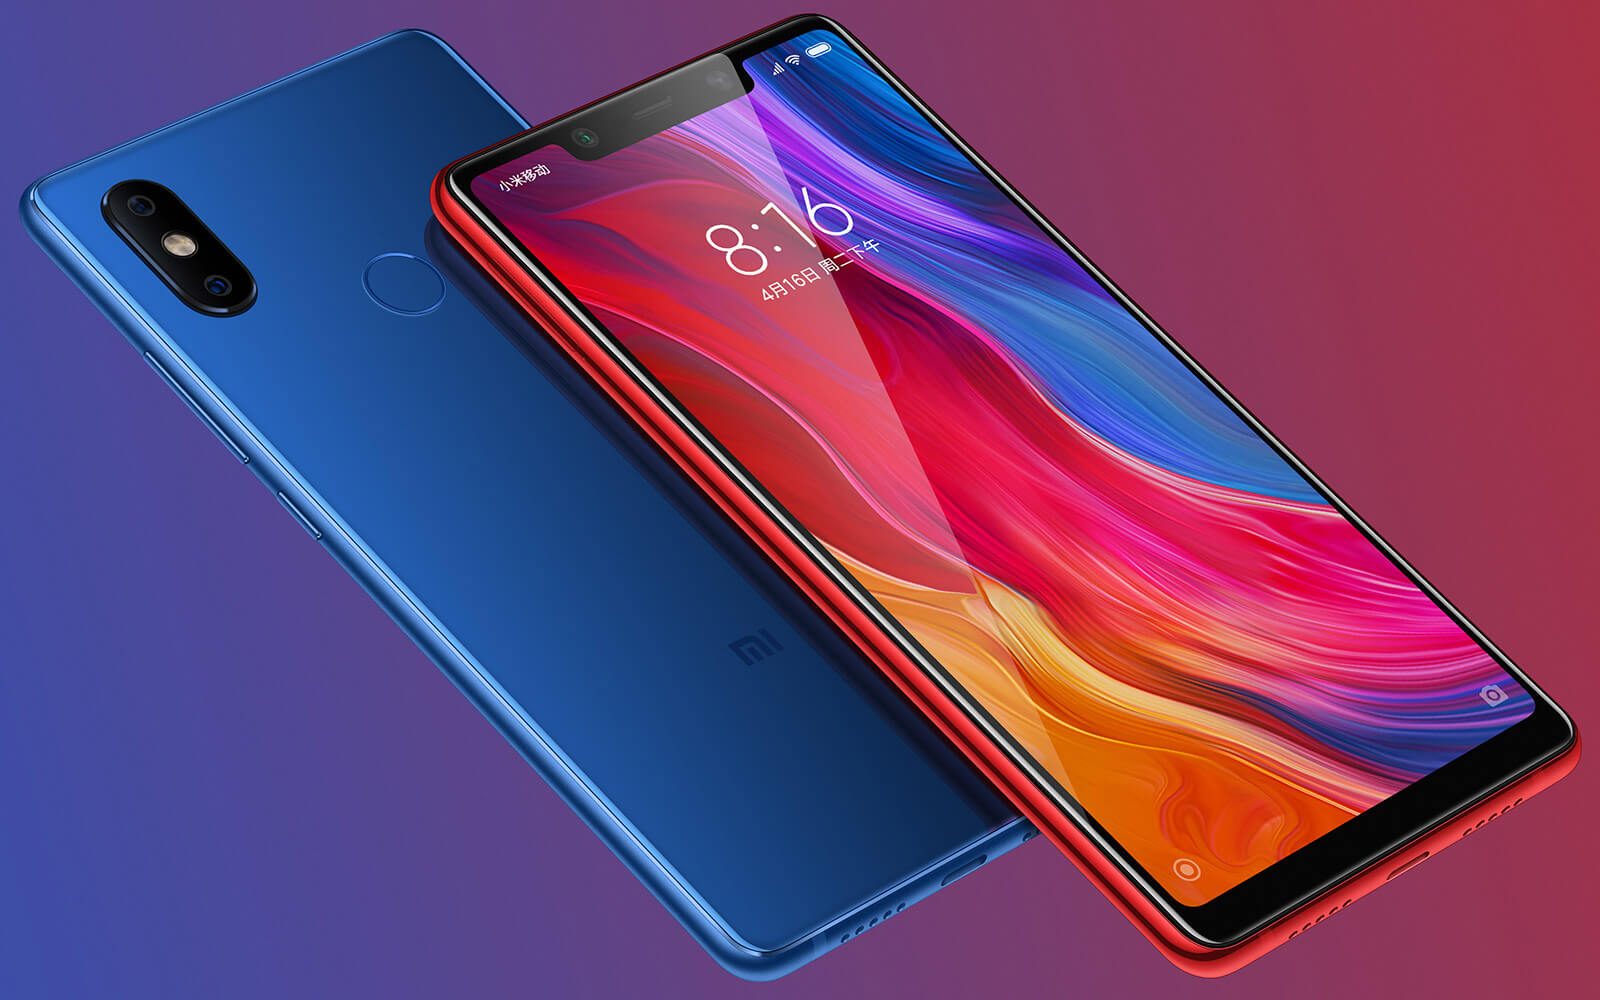 Xiaomi Mi 8 launched: 6.21 flagship with vertical dual-lens camera